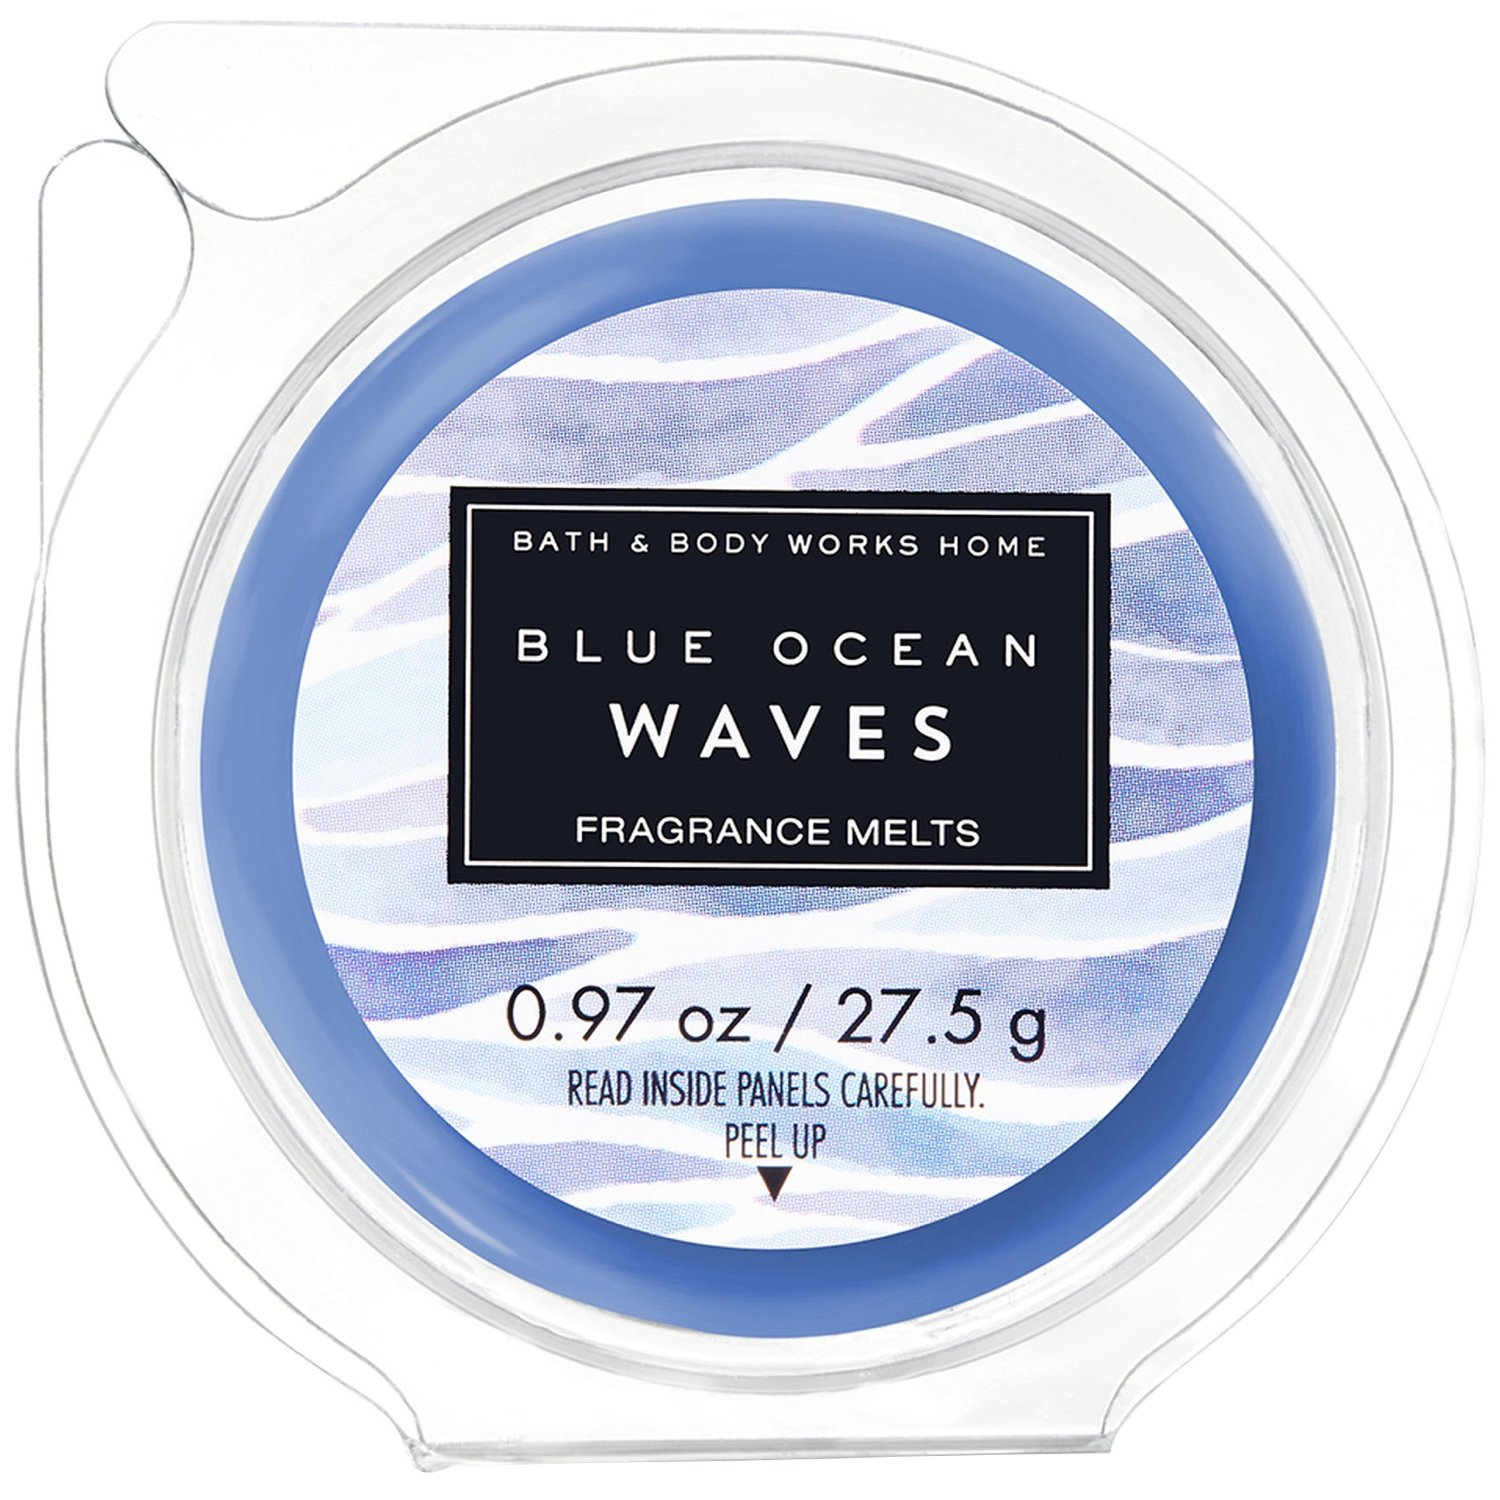 Bath & Body Works Wax Home Fragrance Melt Blue Ocean Waves